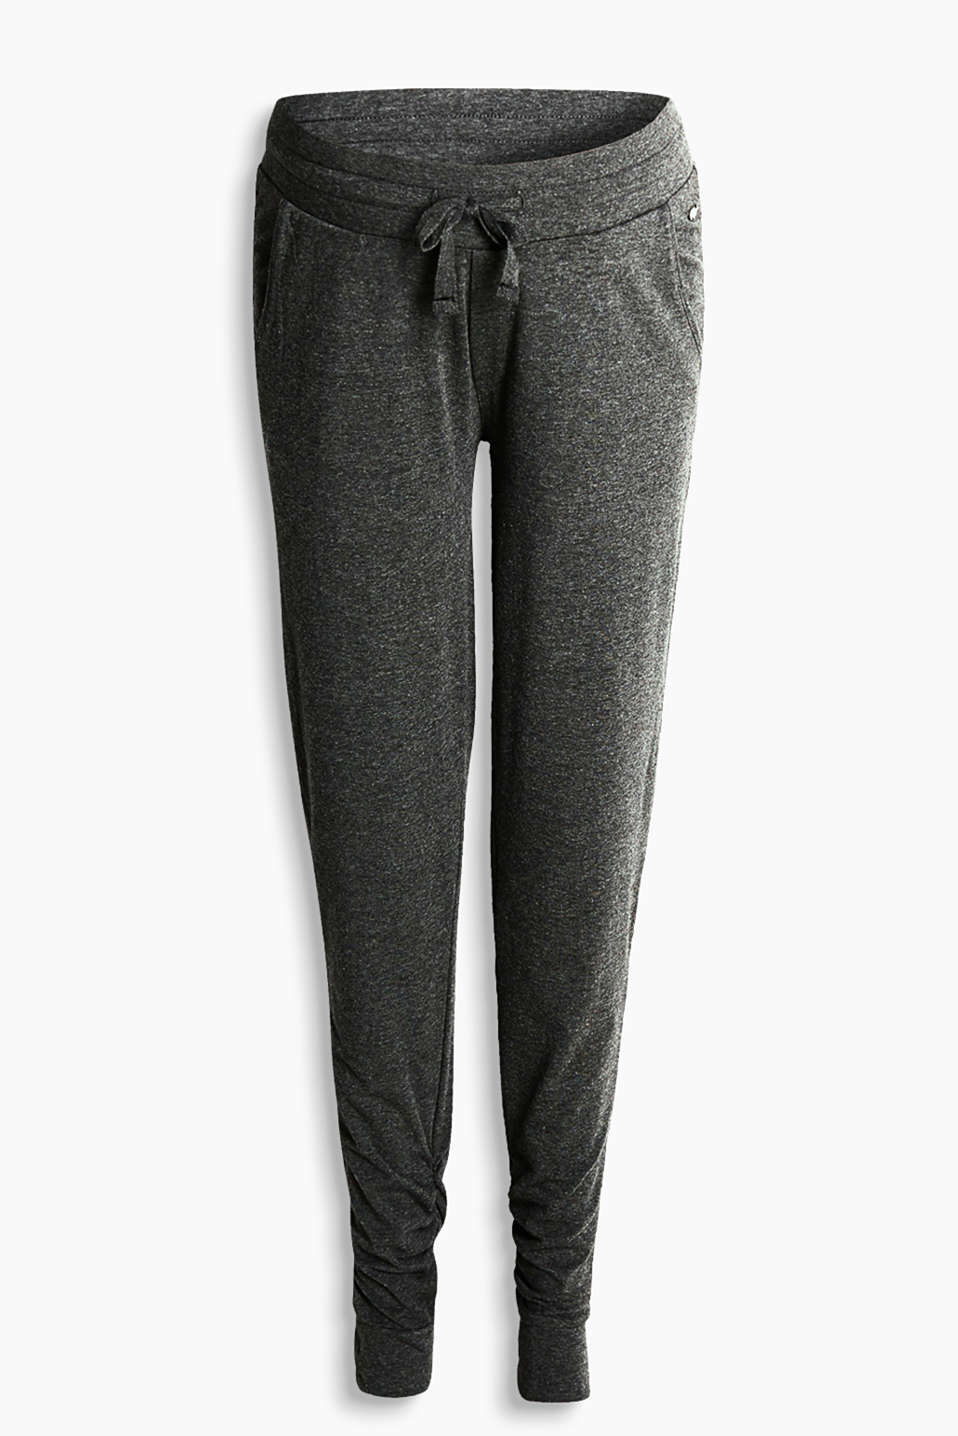 Soft jersey trousers with gathered seams on the legs, leg cuffs and supportive under-bump waistband